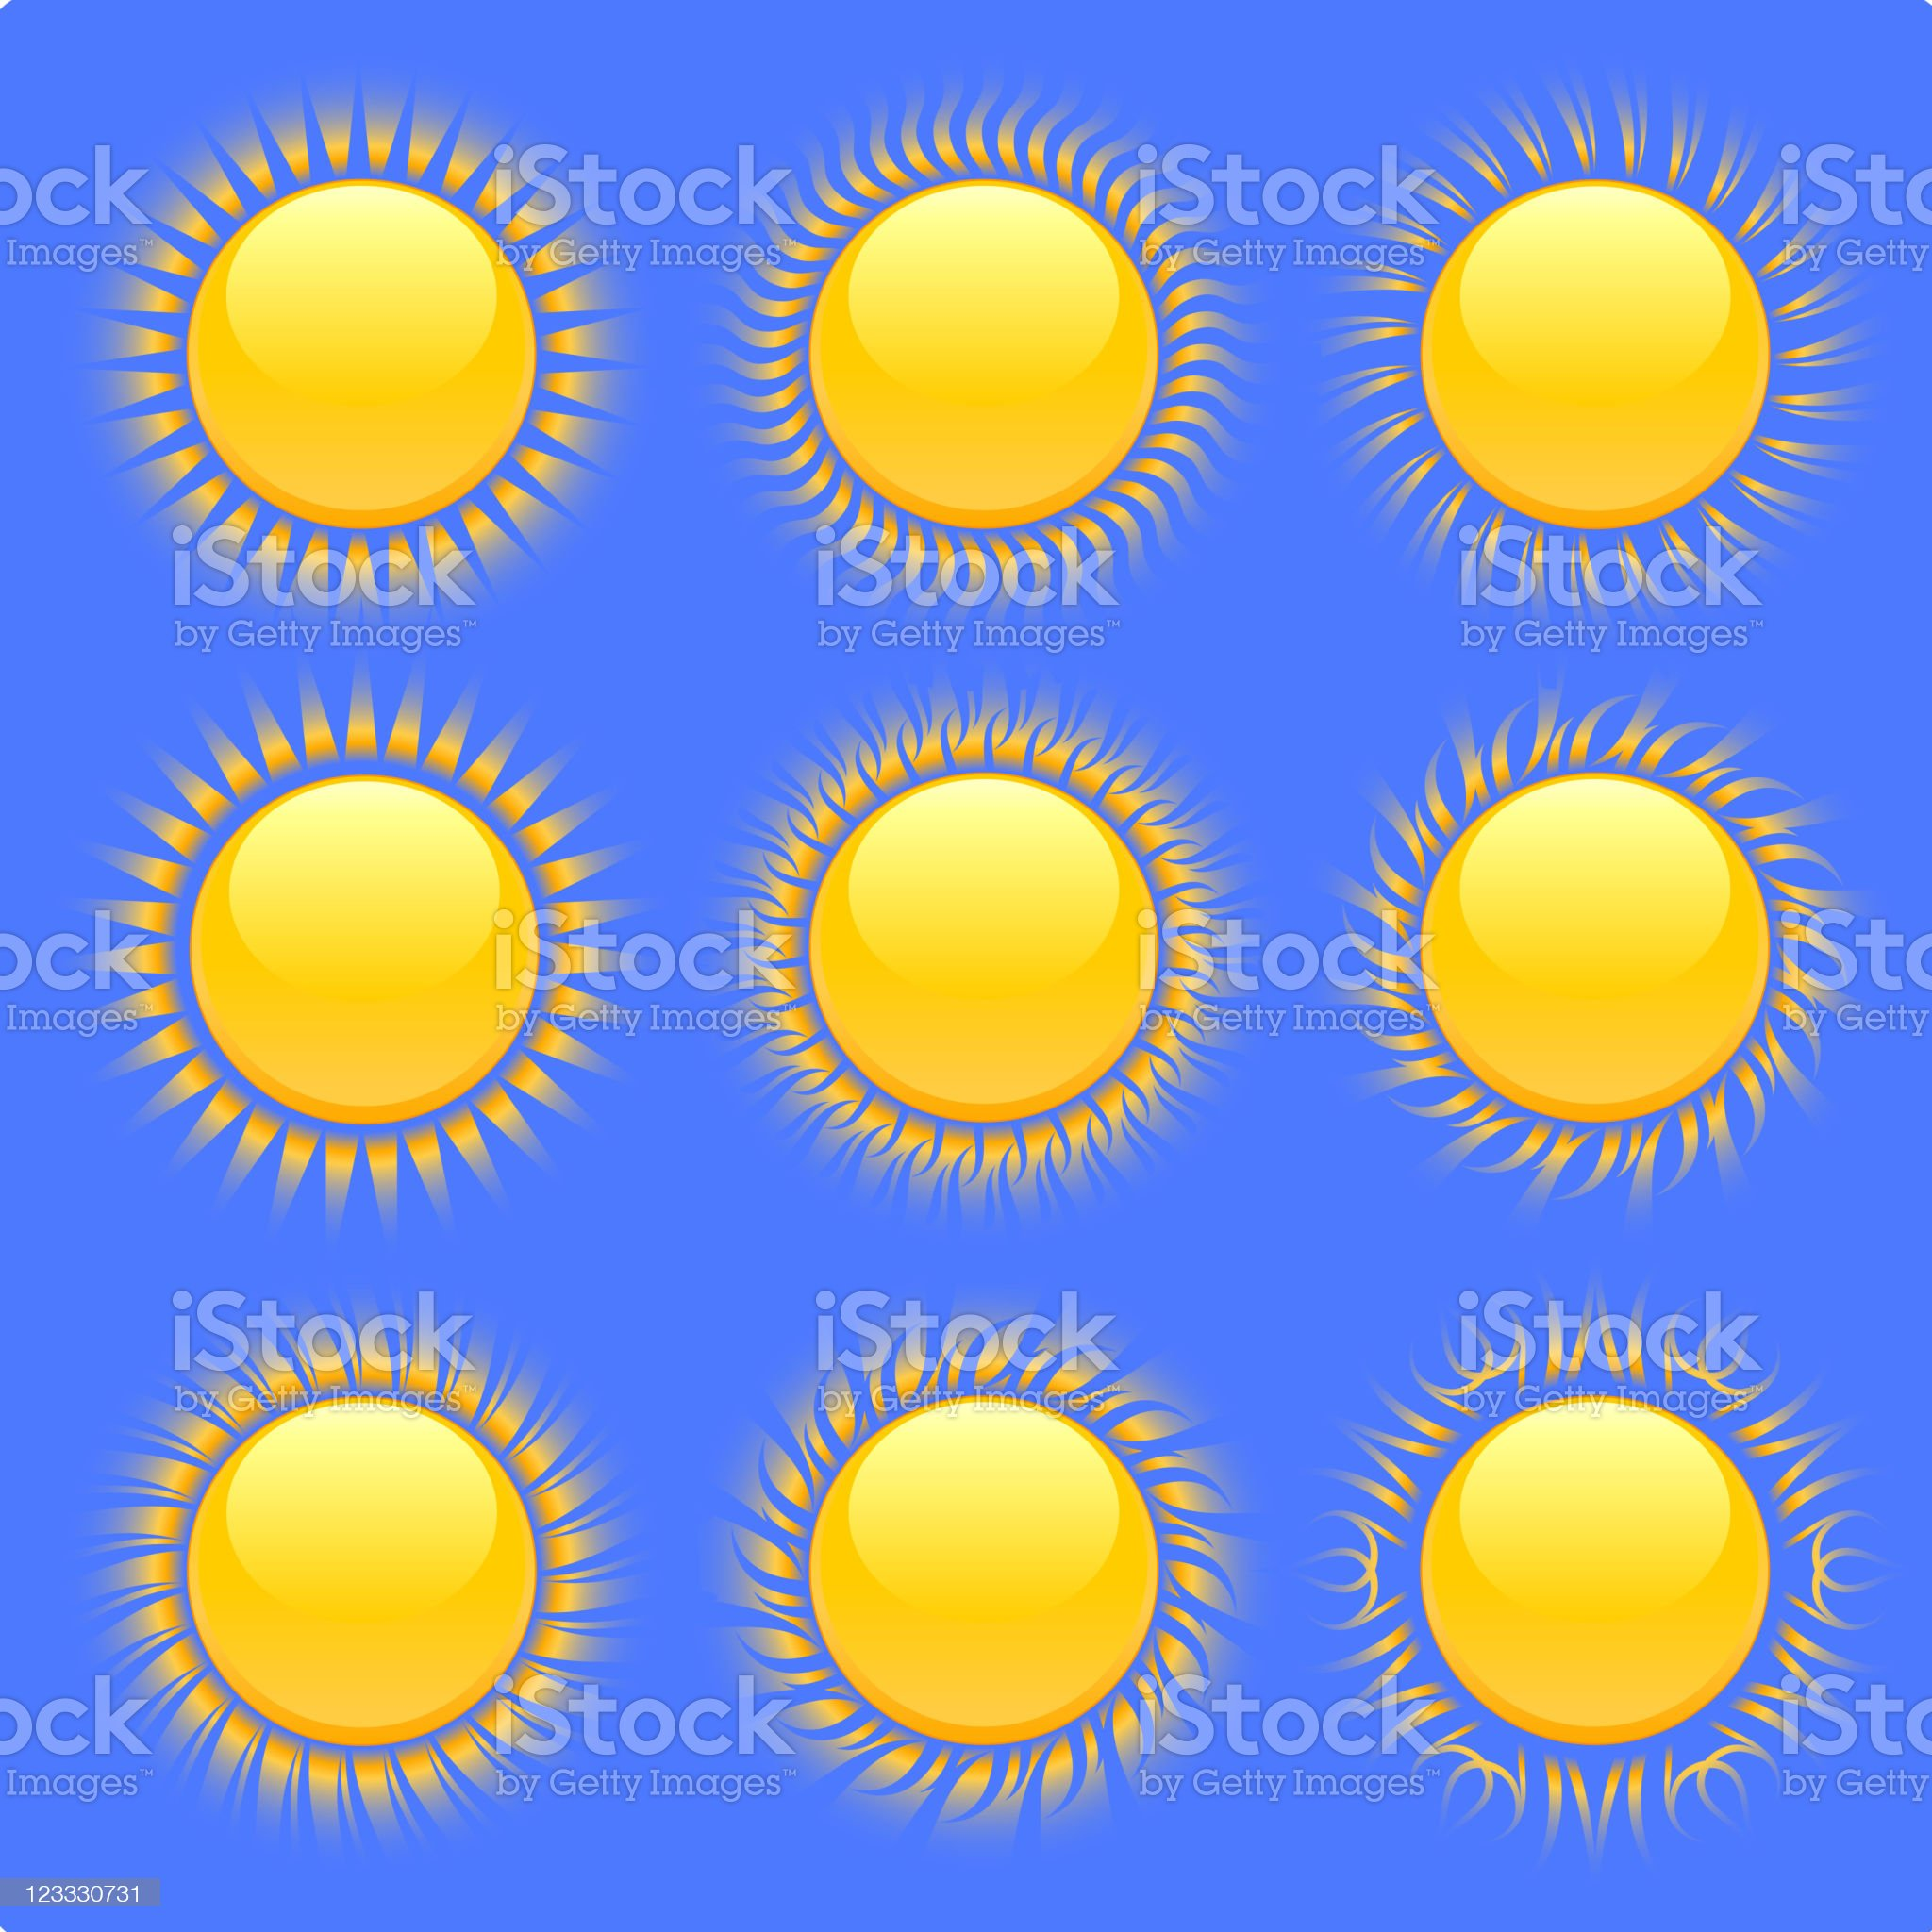 original sun designs on blue Background royalty-free stock vector art